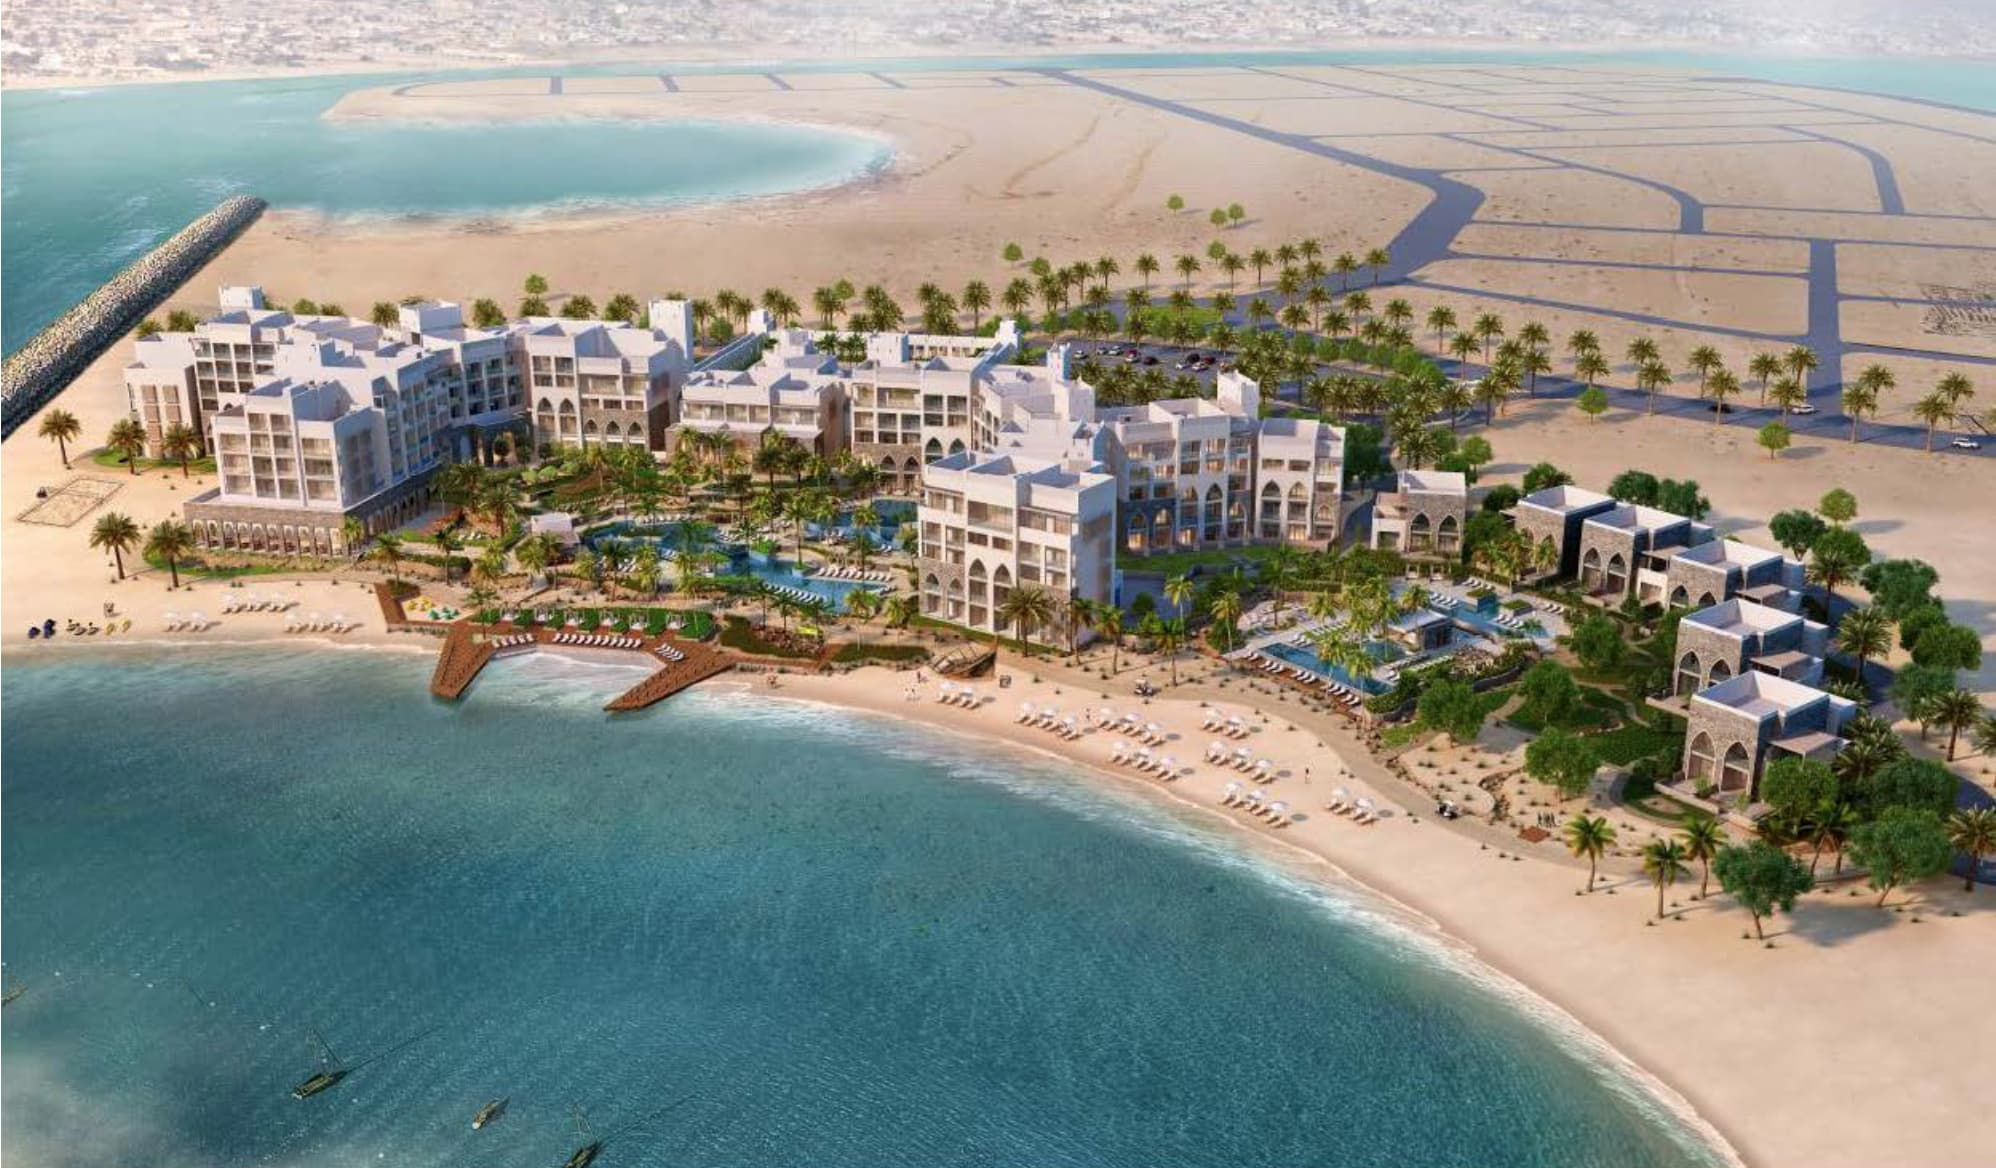 Auto Owners Login >> Ras Al Khaimah Marriott Resort | ProTenders